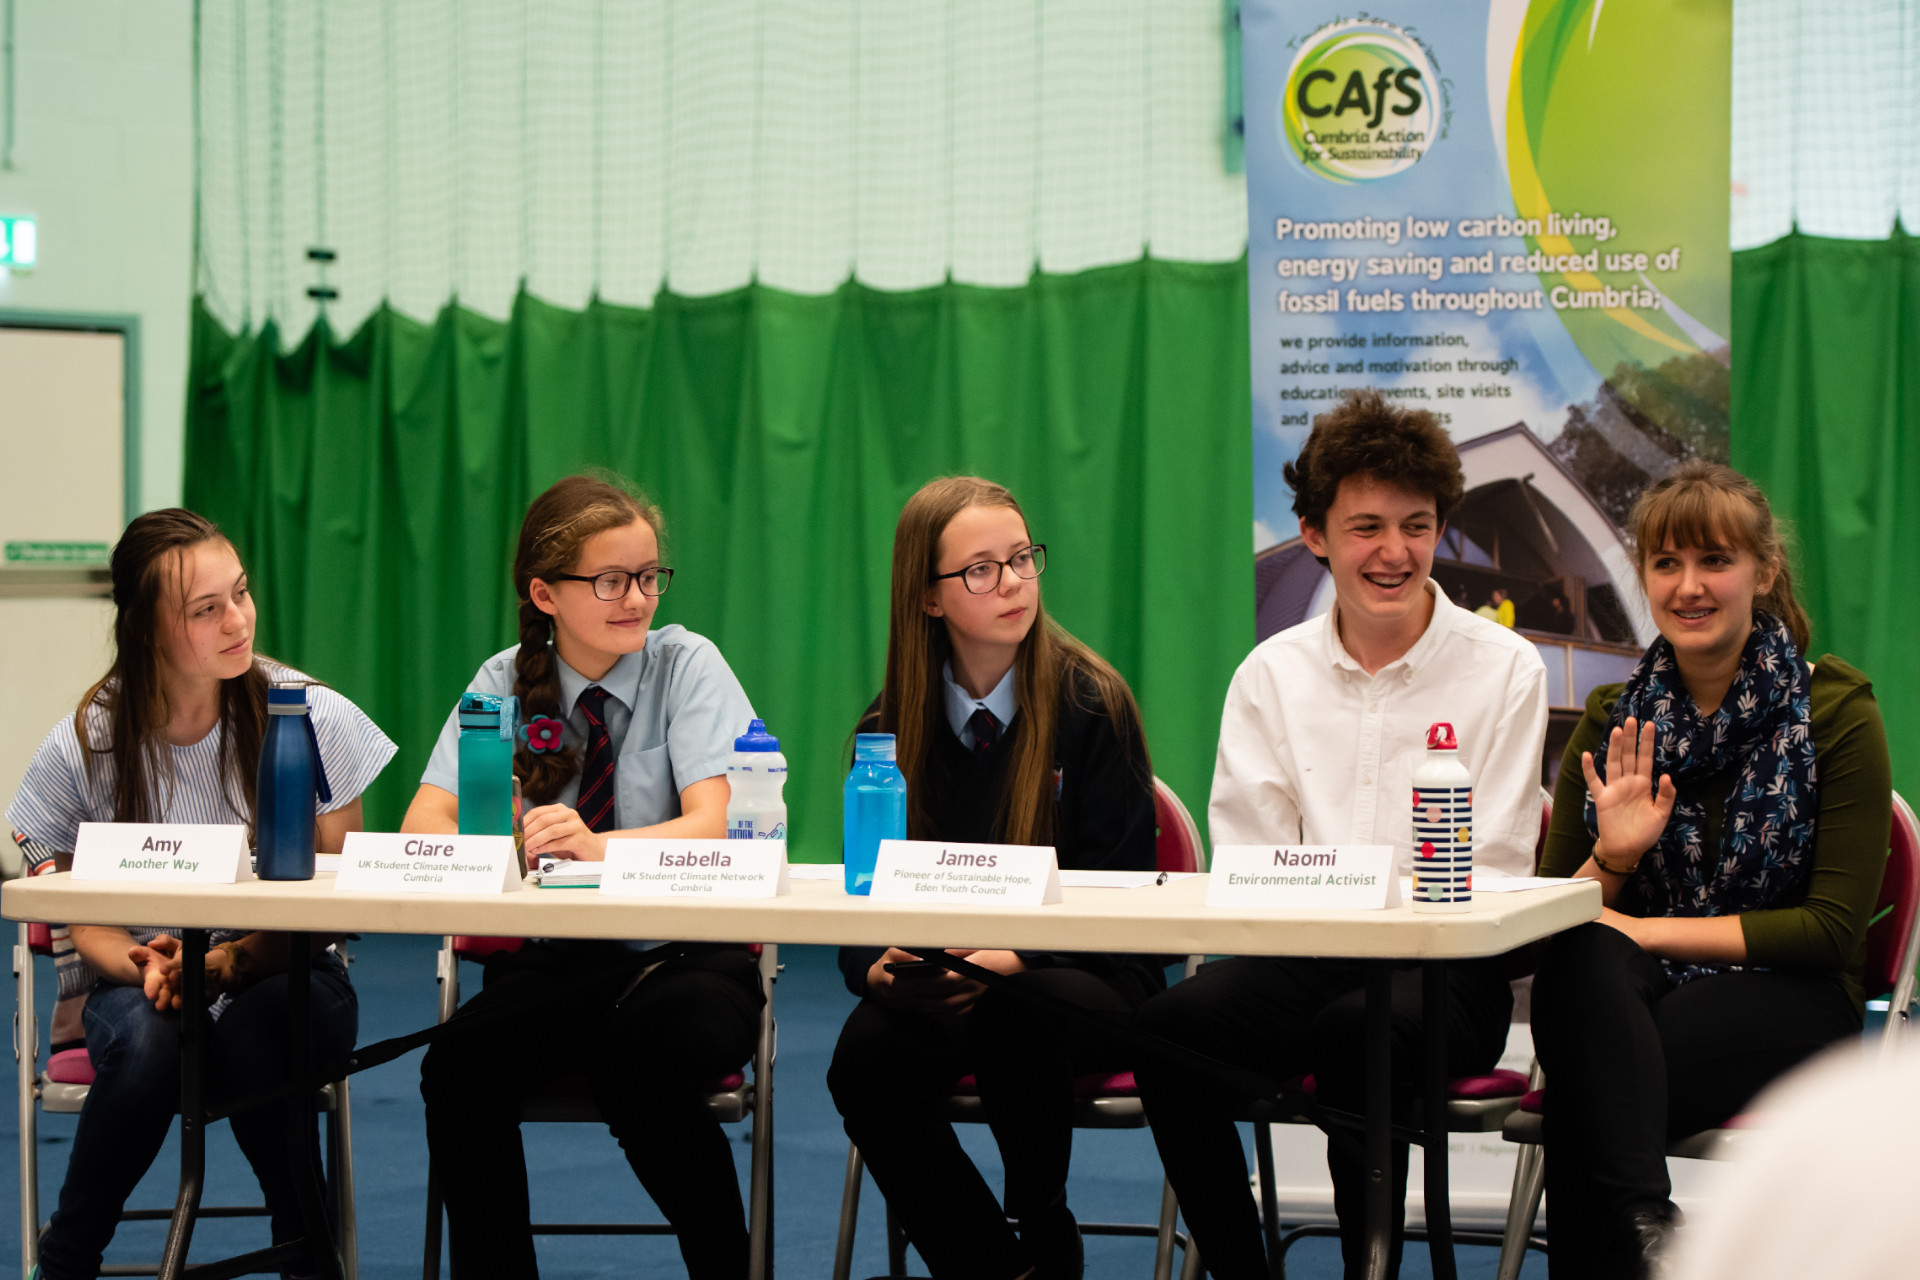 Panel of young people at CAfS Youth Climate Question Time